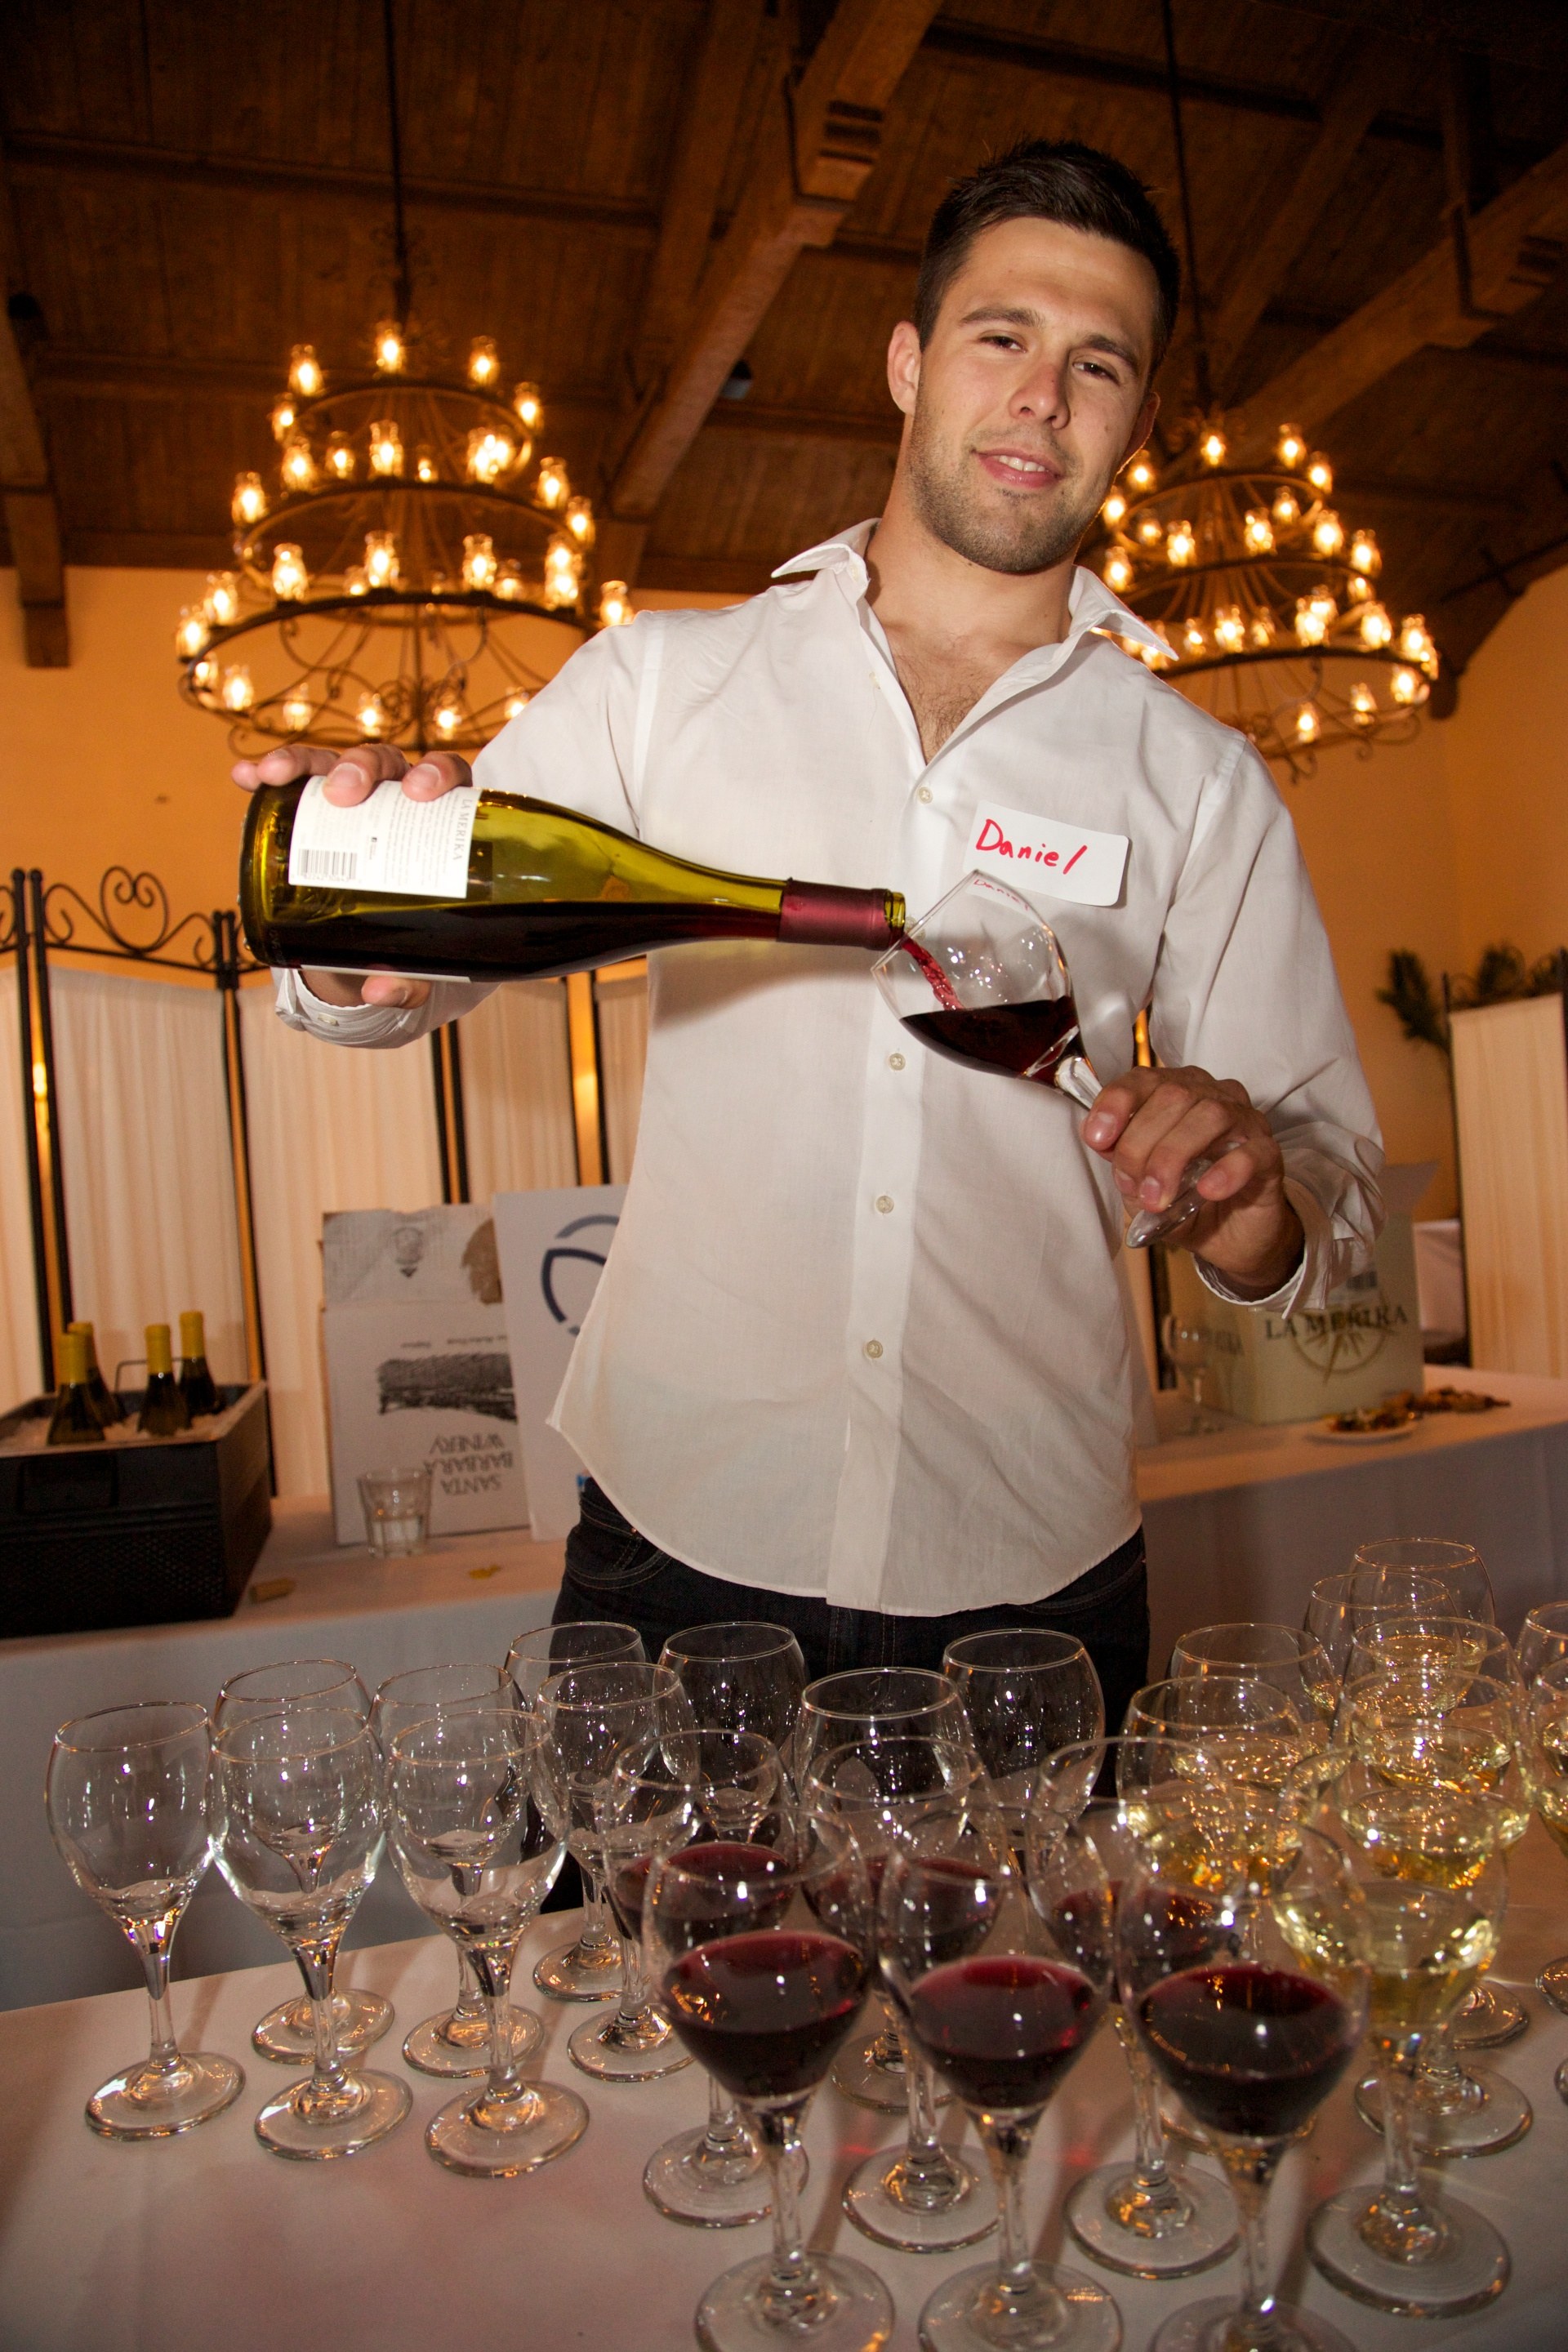 Man Serving Wine